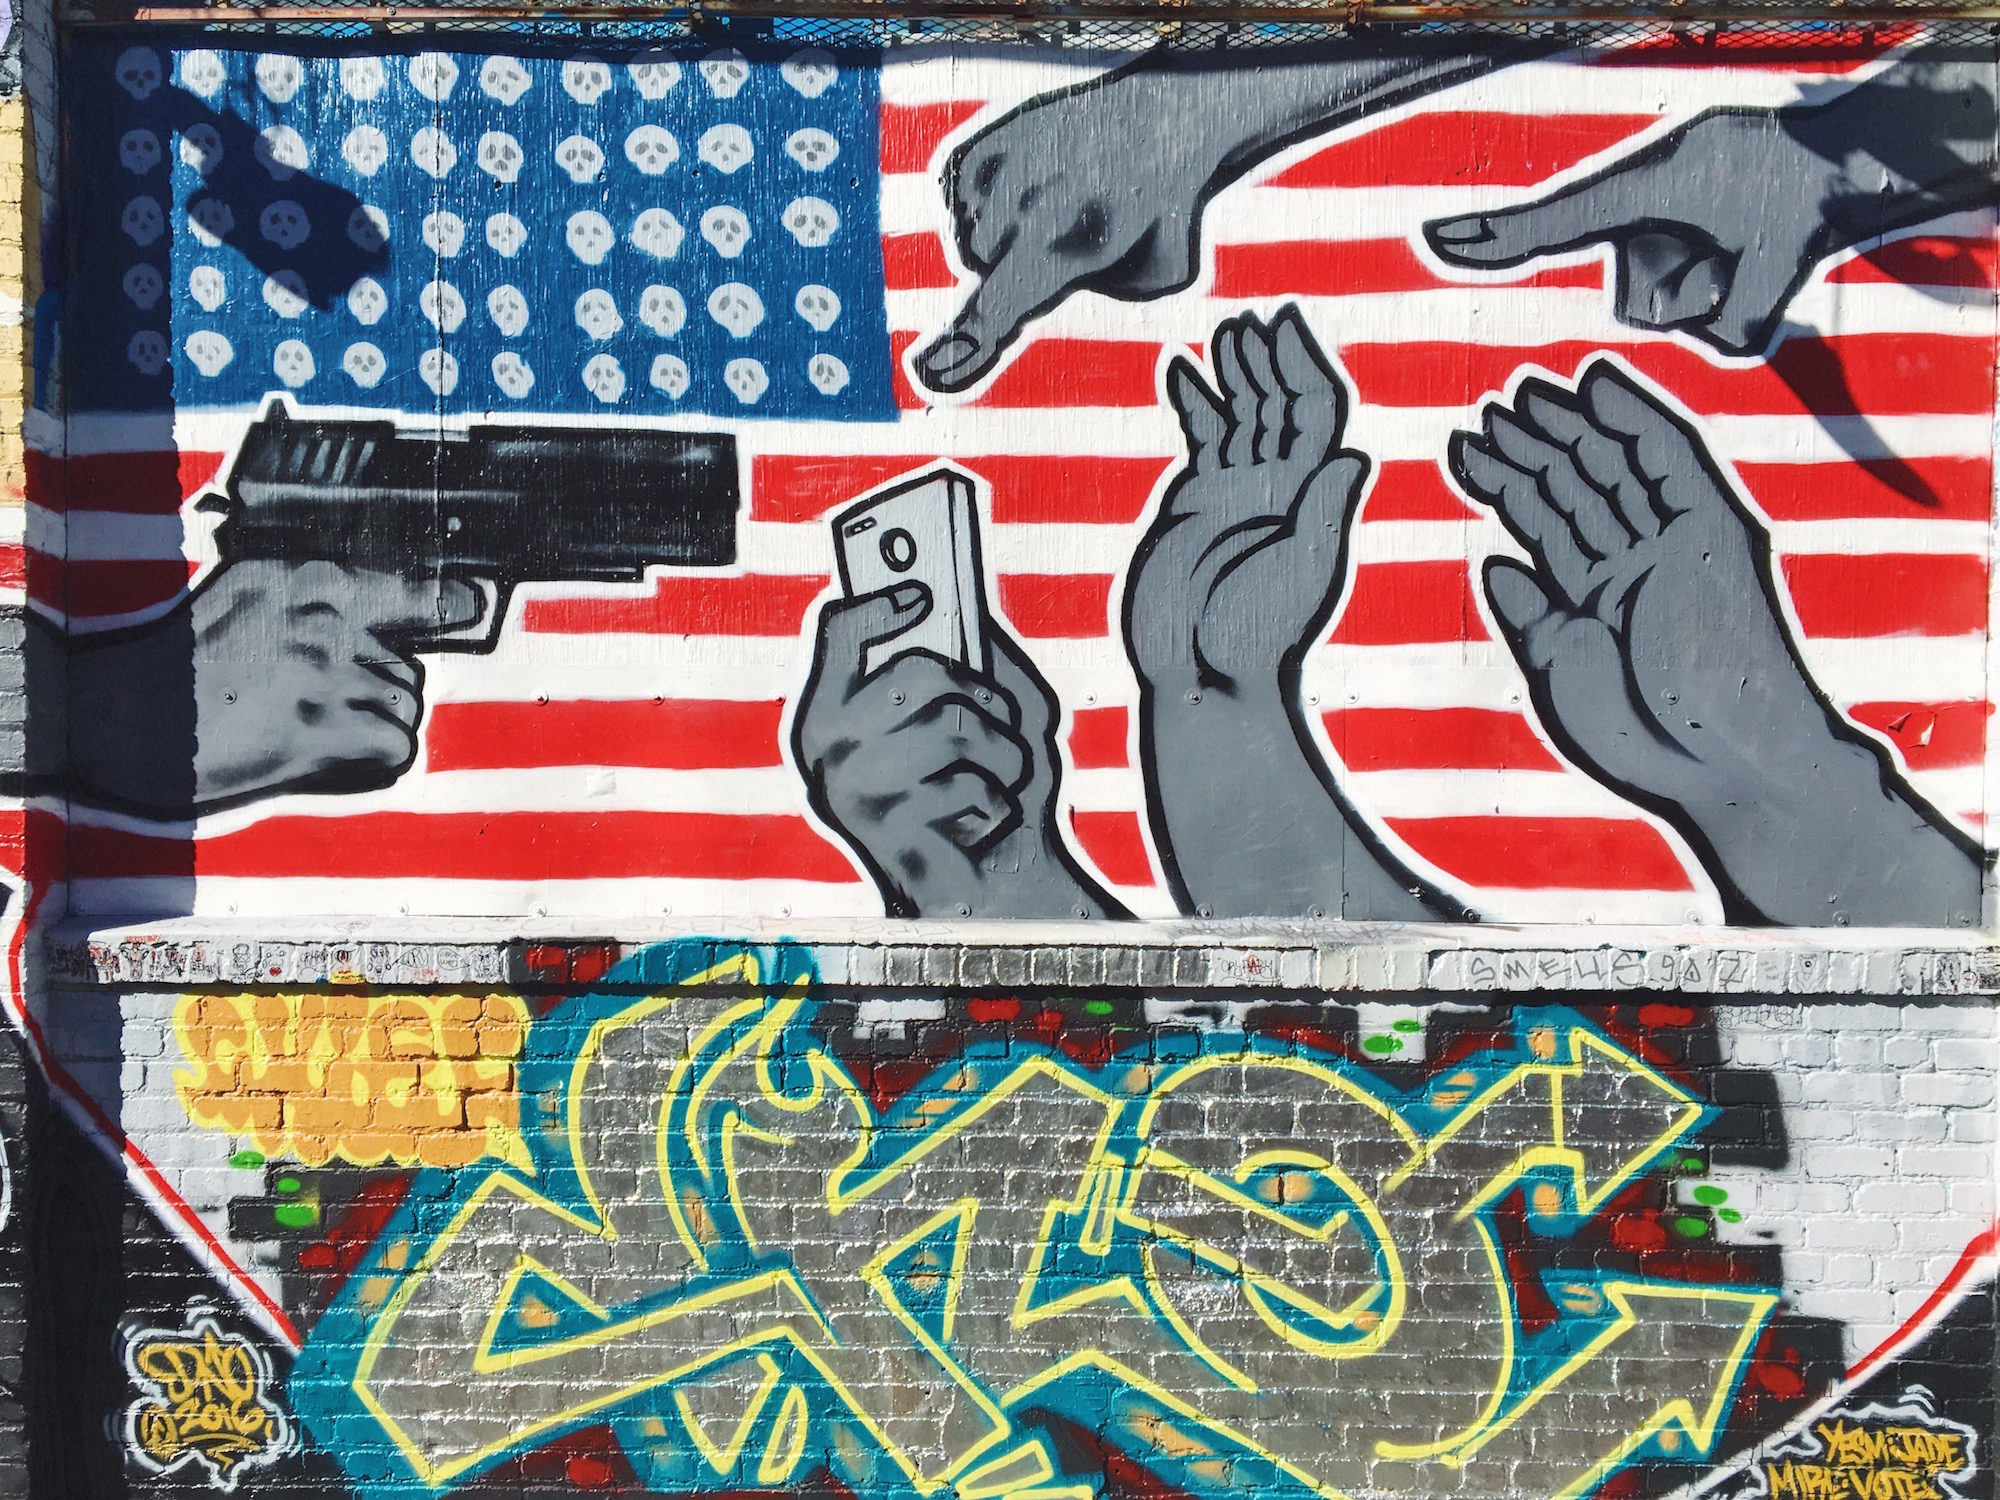 Clarion Alley - Murales nel quartiere Mission di San Francisco - America with guns and smartphones